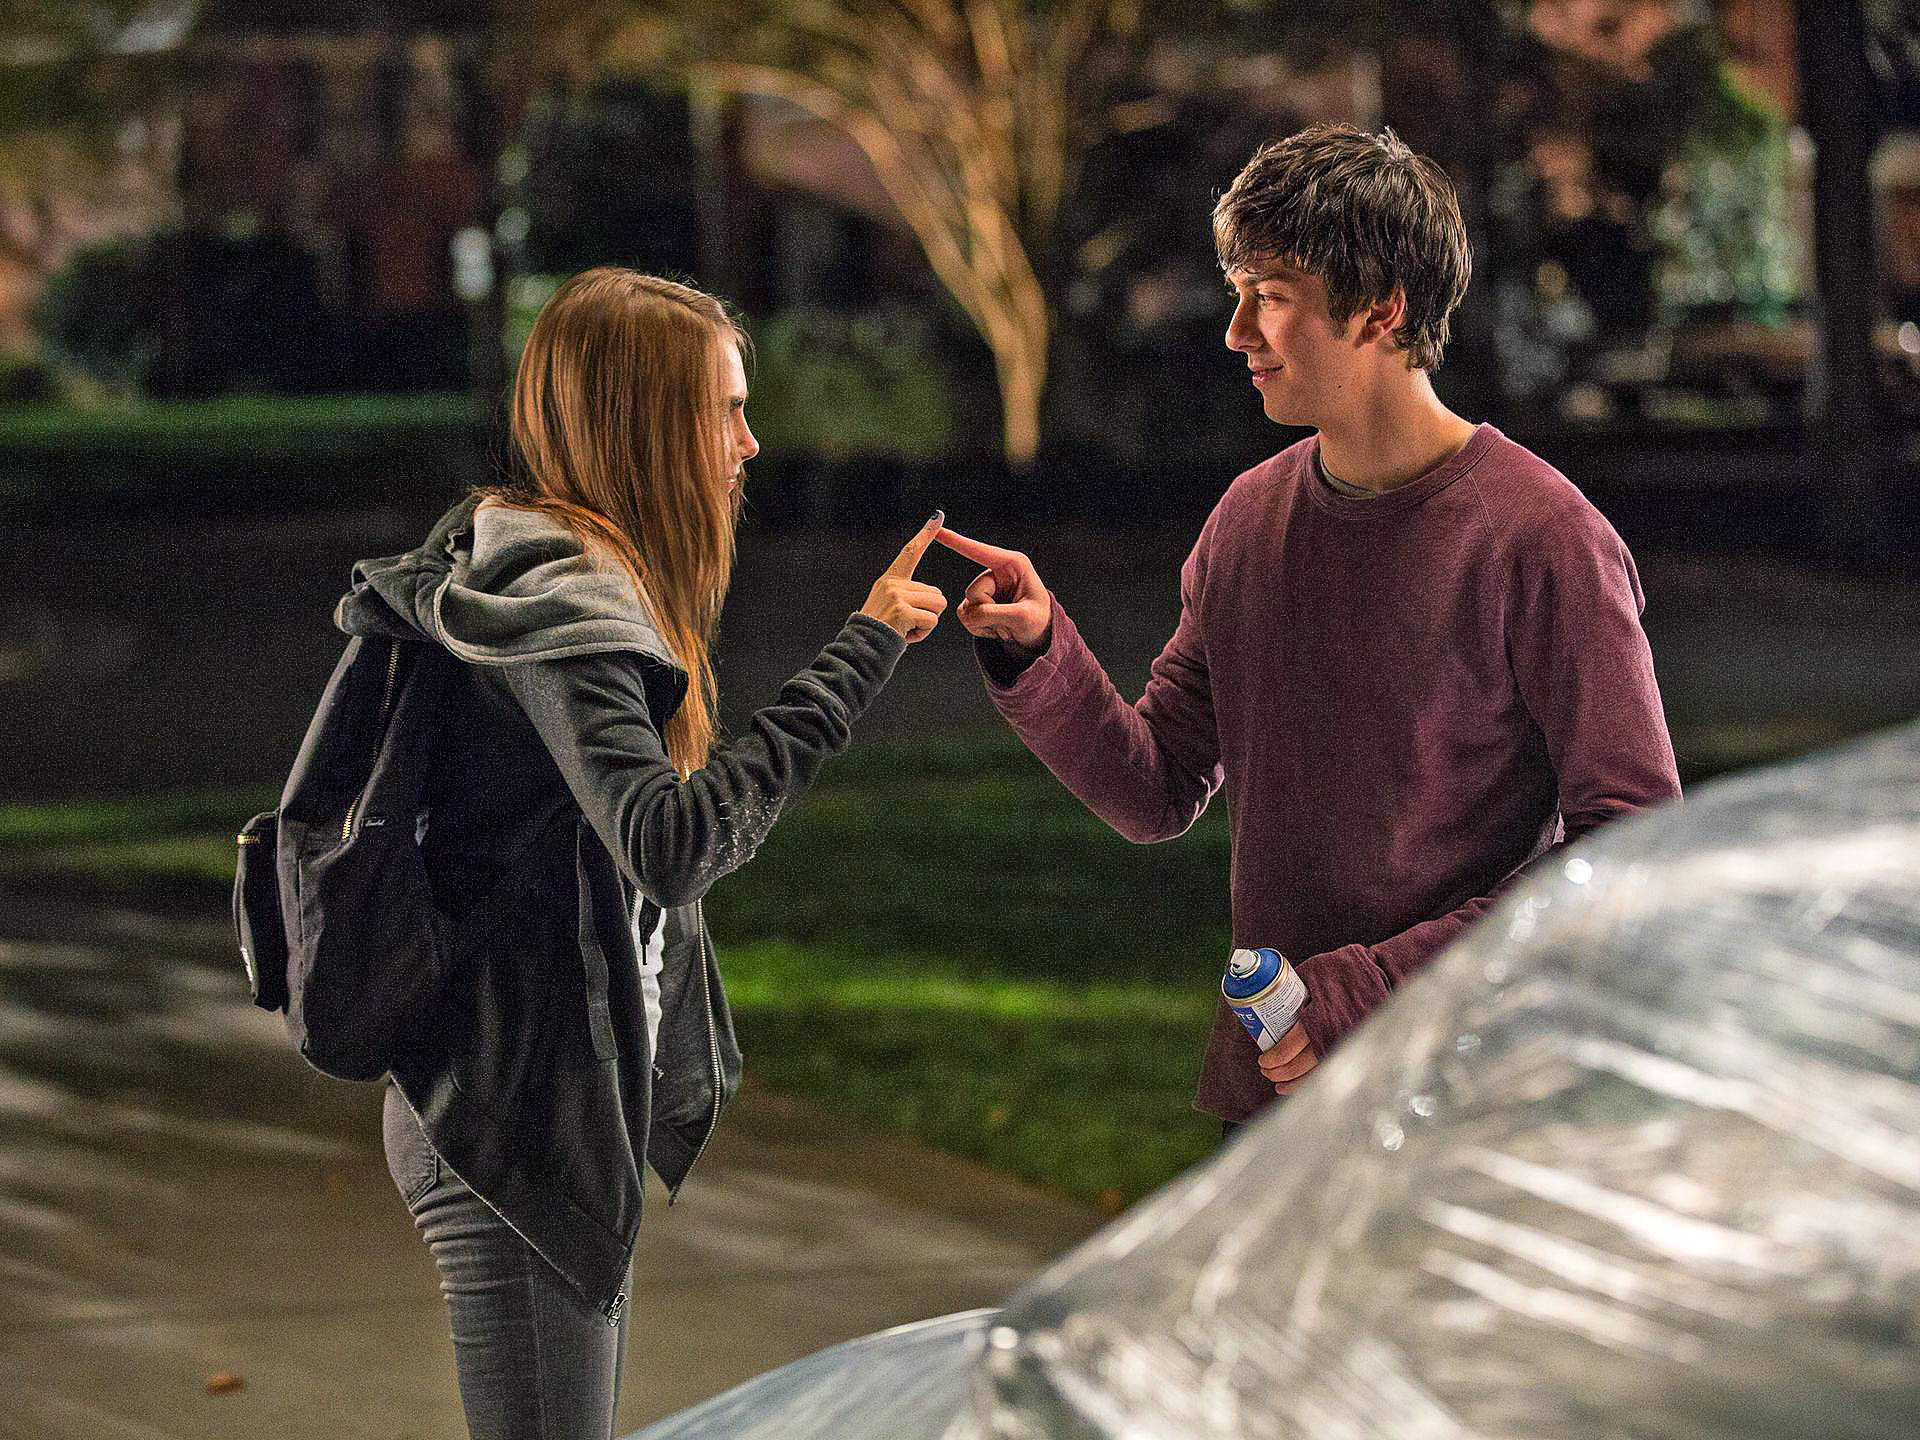 'Paper Towns' trailer: Cara Delevingne is Nat Wolff's 'miracle'